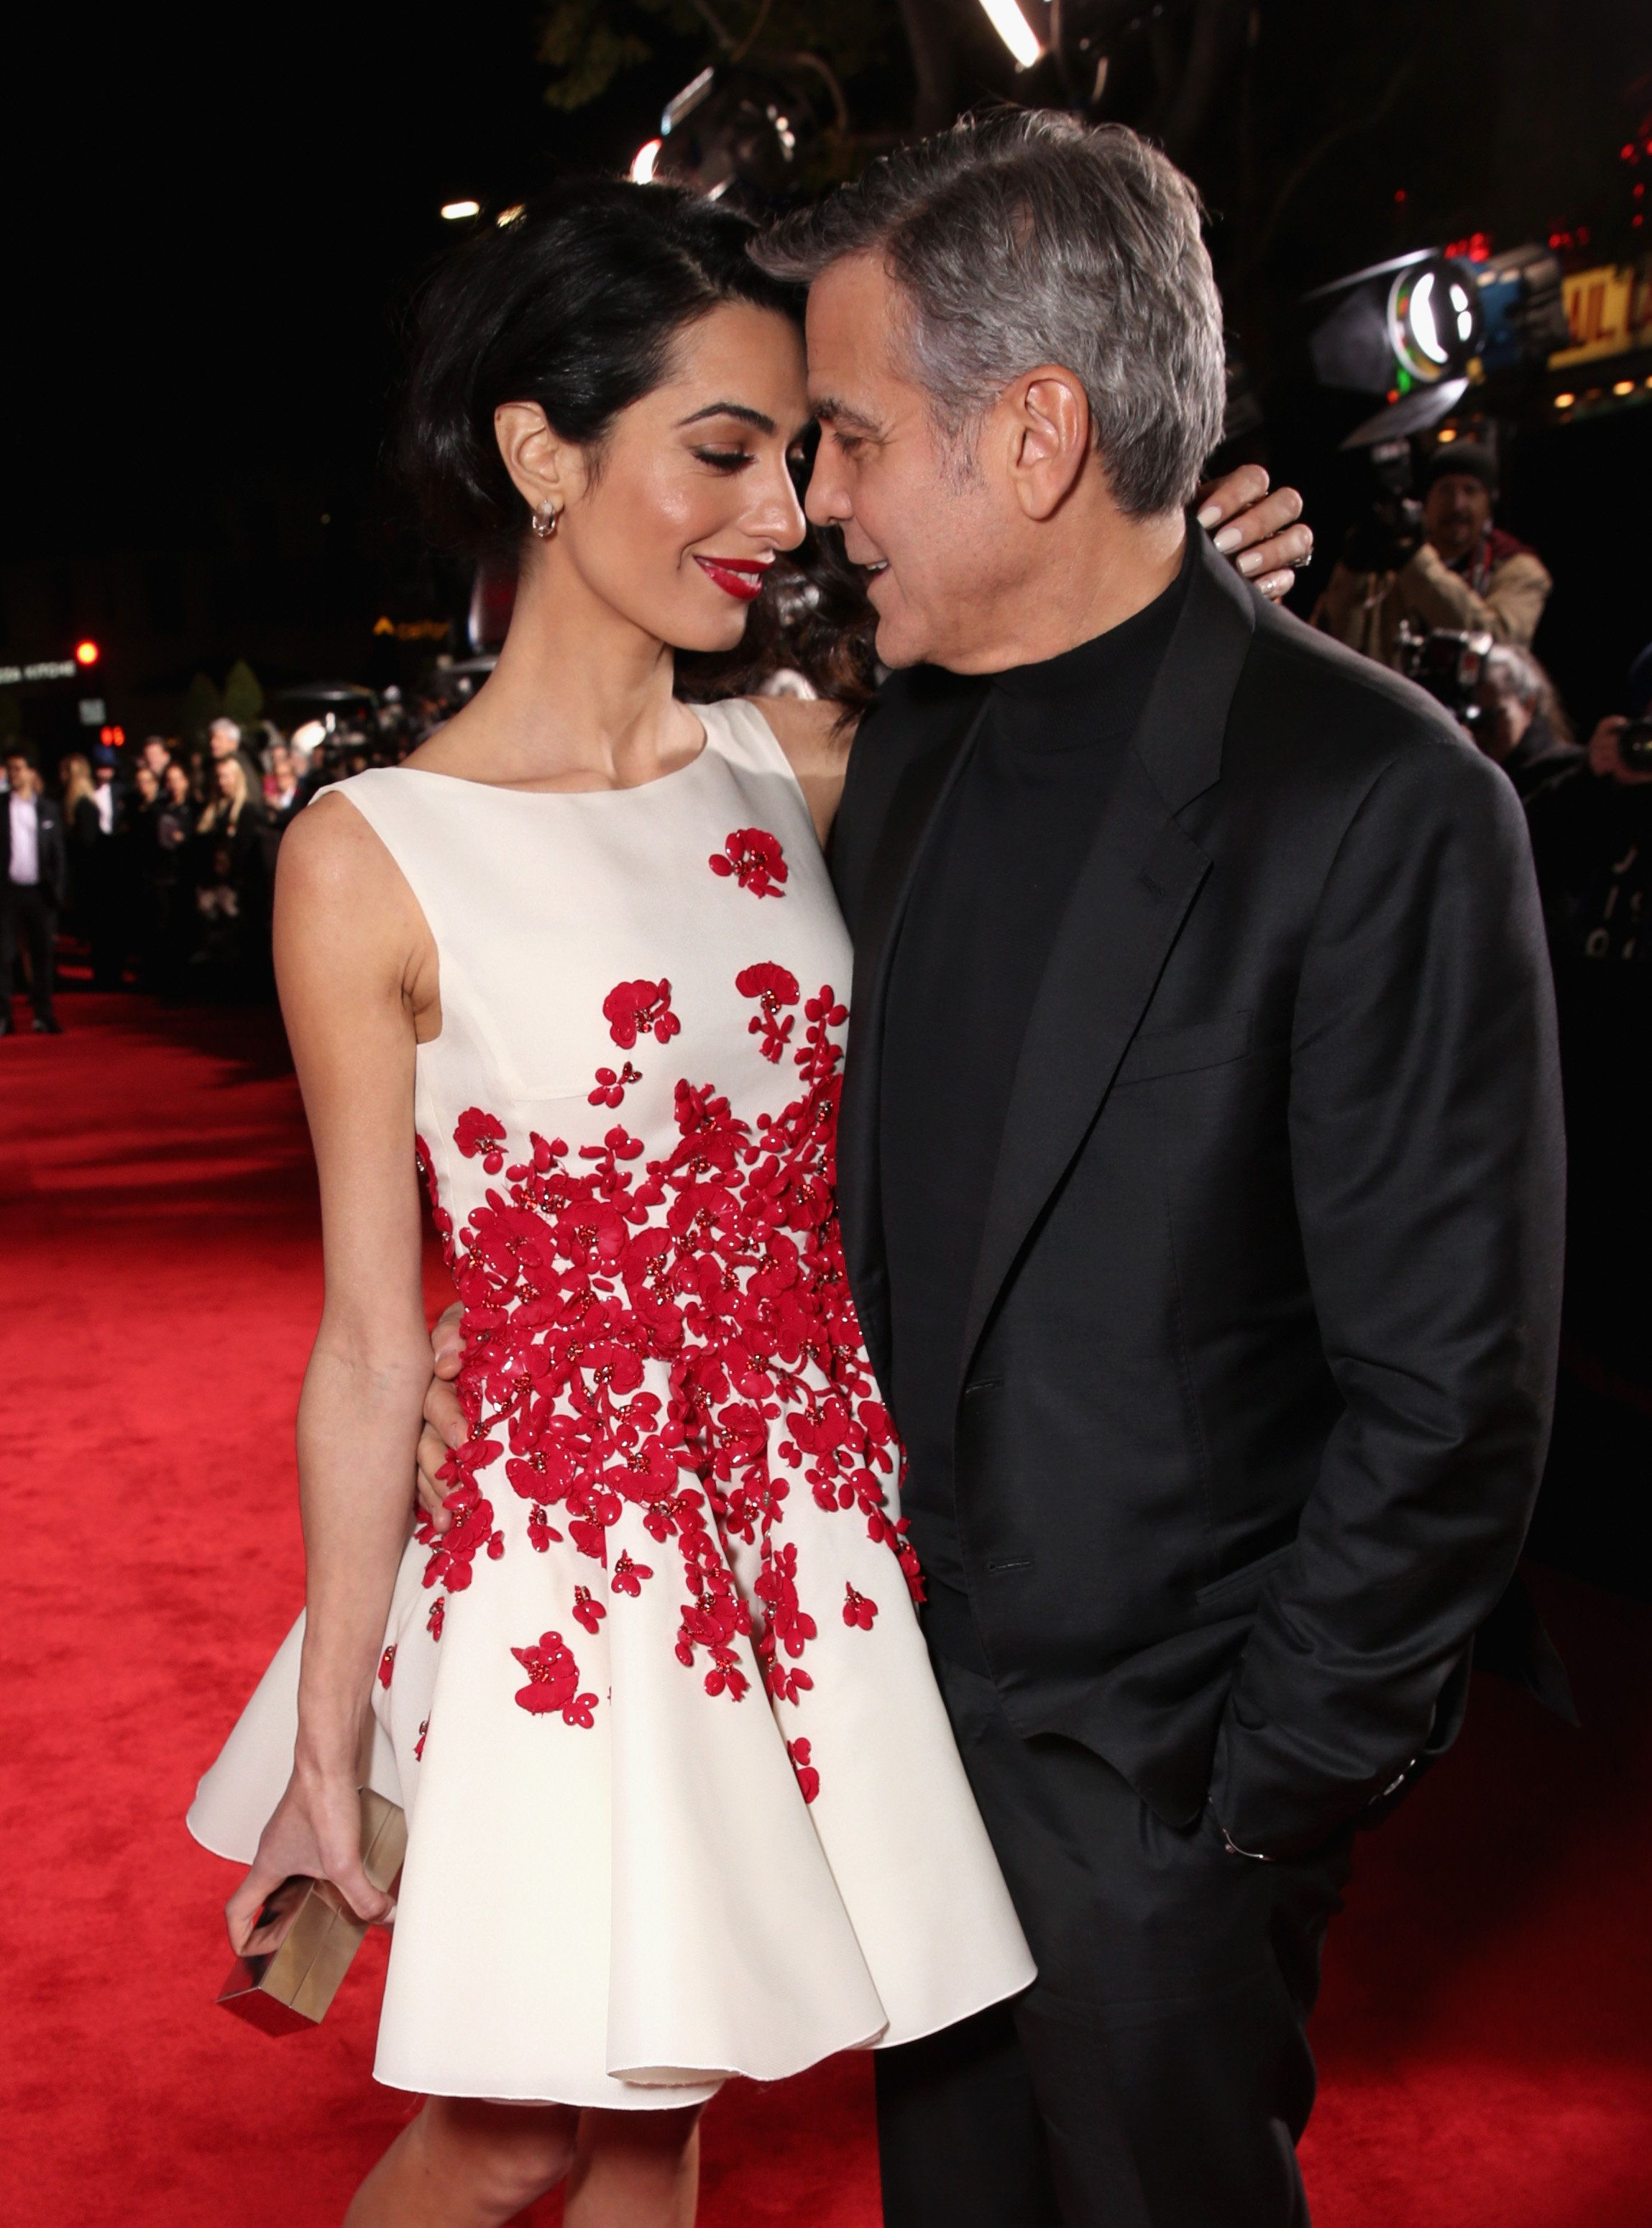 WESTWOOD, CA - FEBRUARY 01:  Actor George Clooney (R) and Amal Clooney attend Universal Pictures' 'Hail, Caesar!' premiere at Regency Village Theatre on February 1, 2016 in Westwood, California.  (Photo by Todd Williamson/Getty Images)